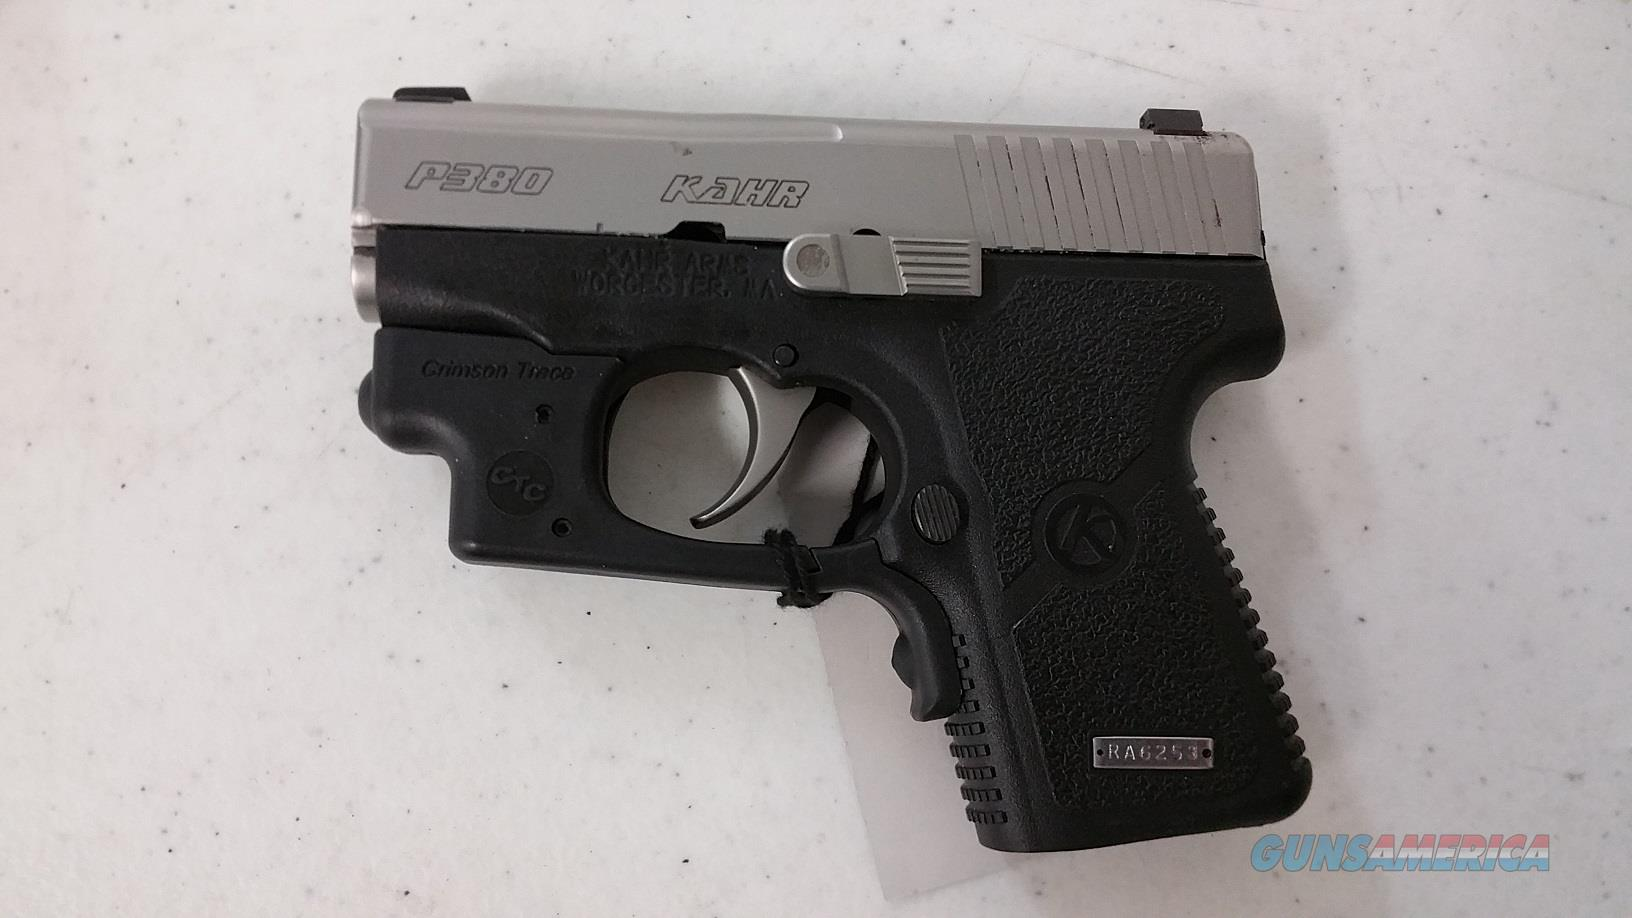 Kahr P380 Stainless with Crimson Trace red laser and night sights  Guns > Pistols > Kahr Pistols